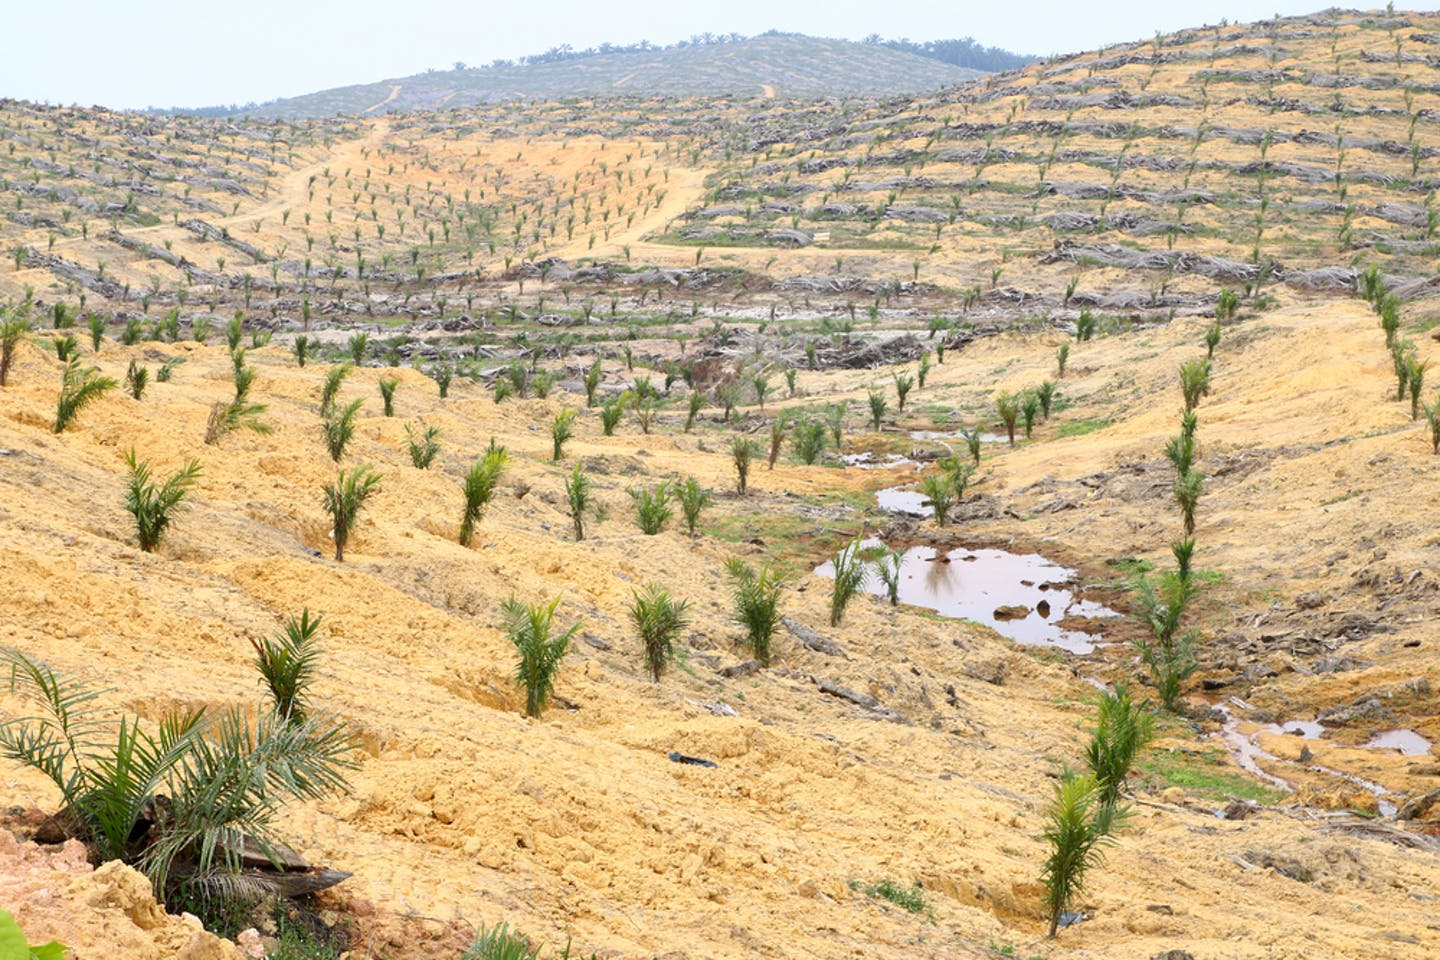 palm oil saplings deforested land